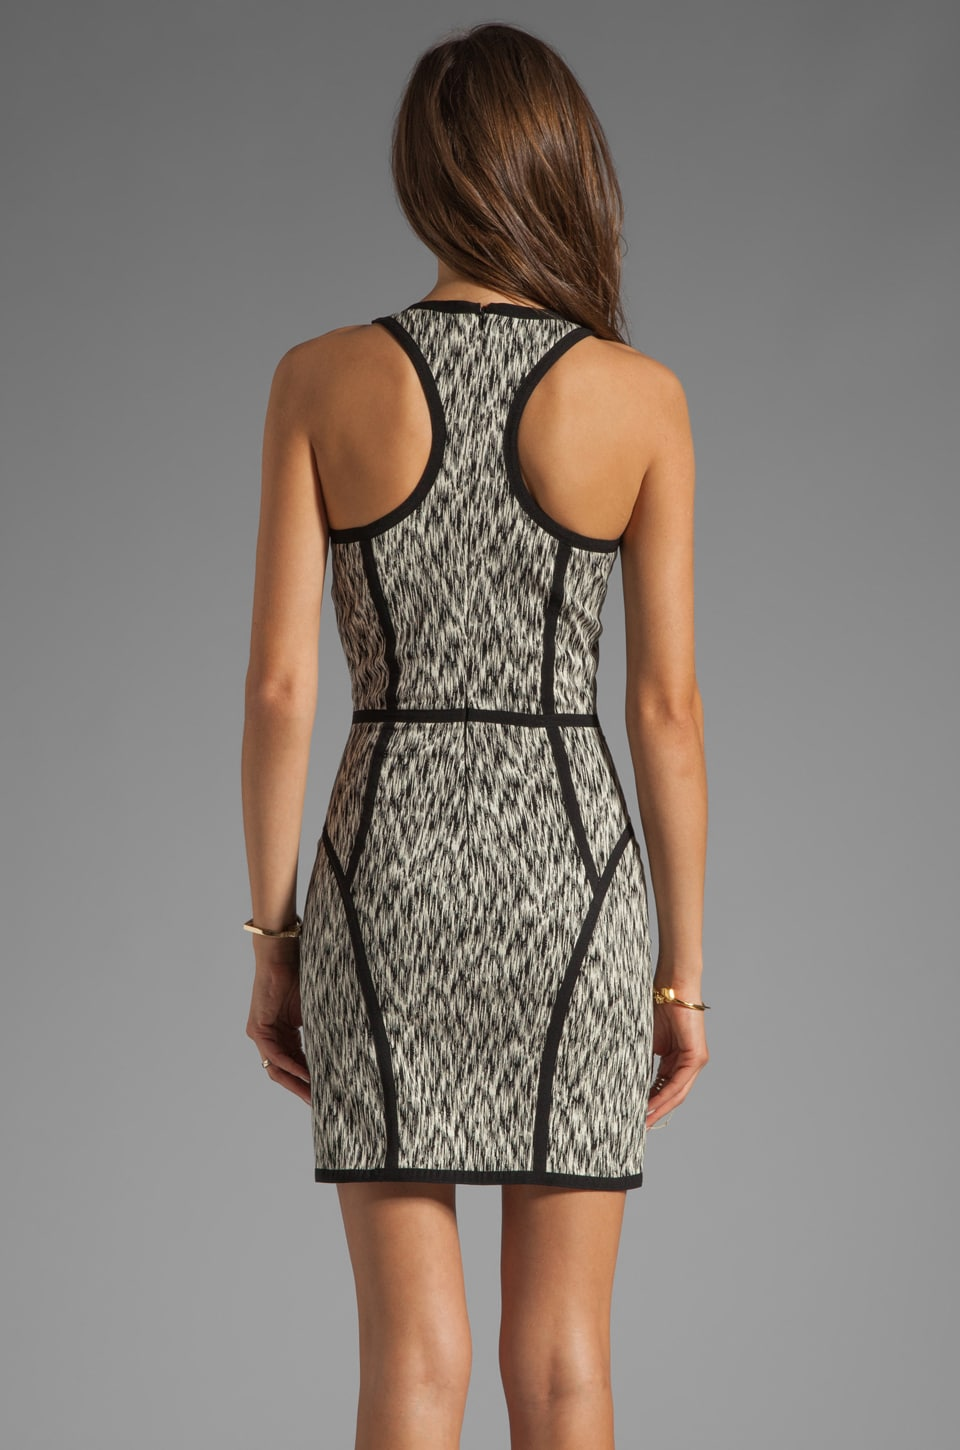 Parker Palms Dress in Black/White